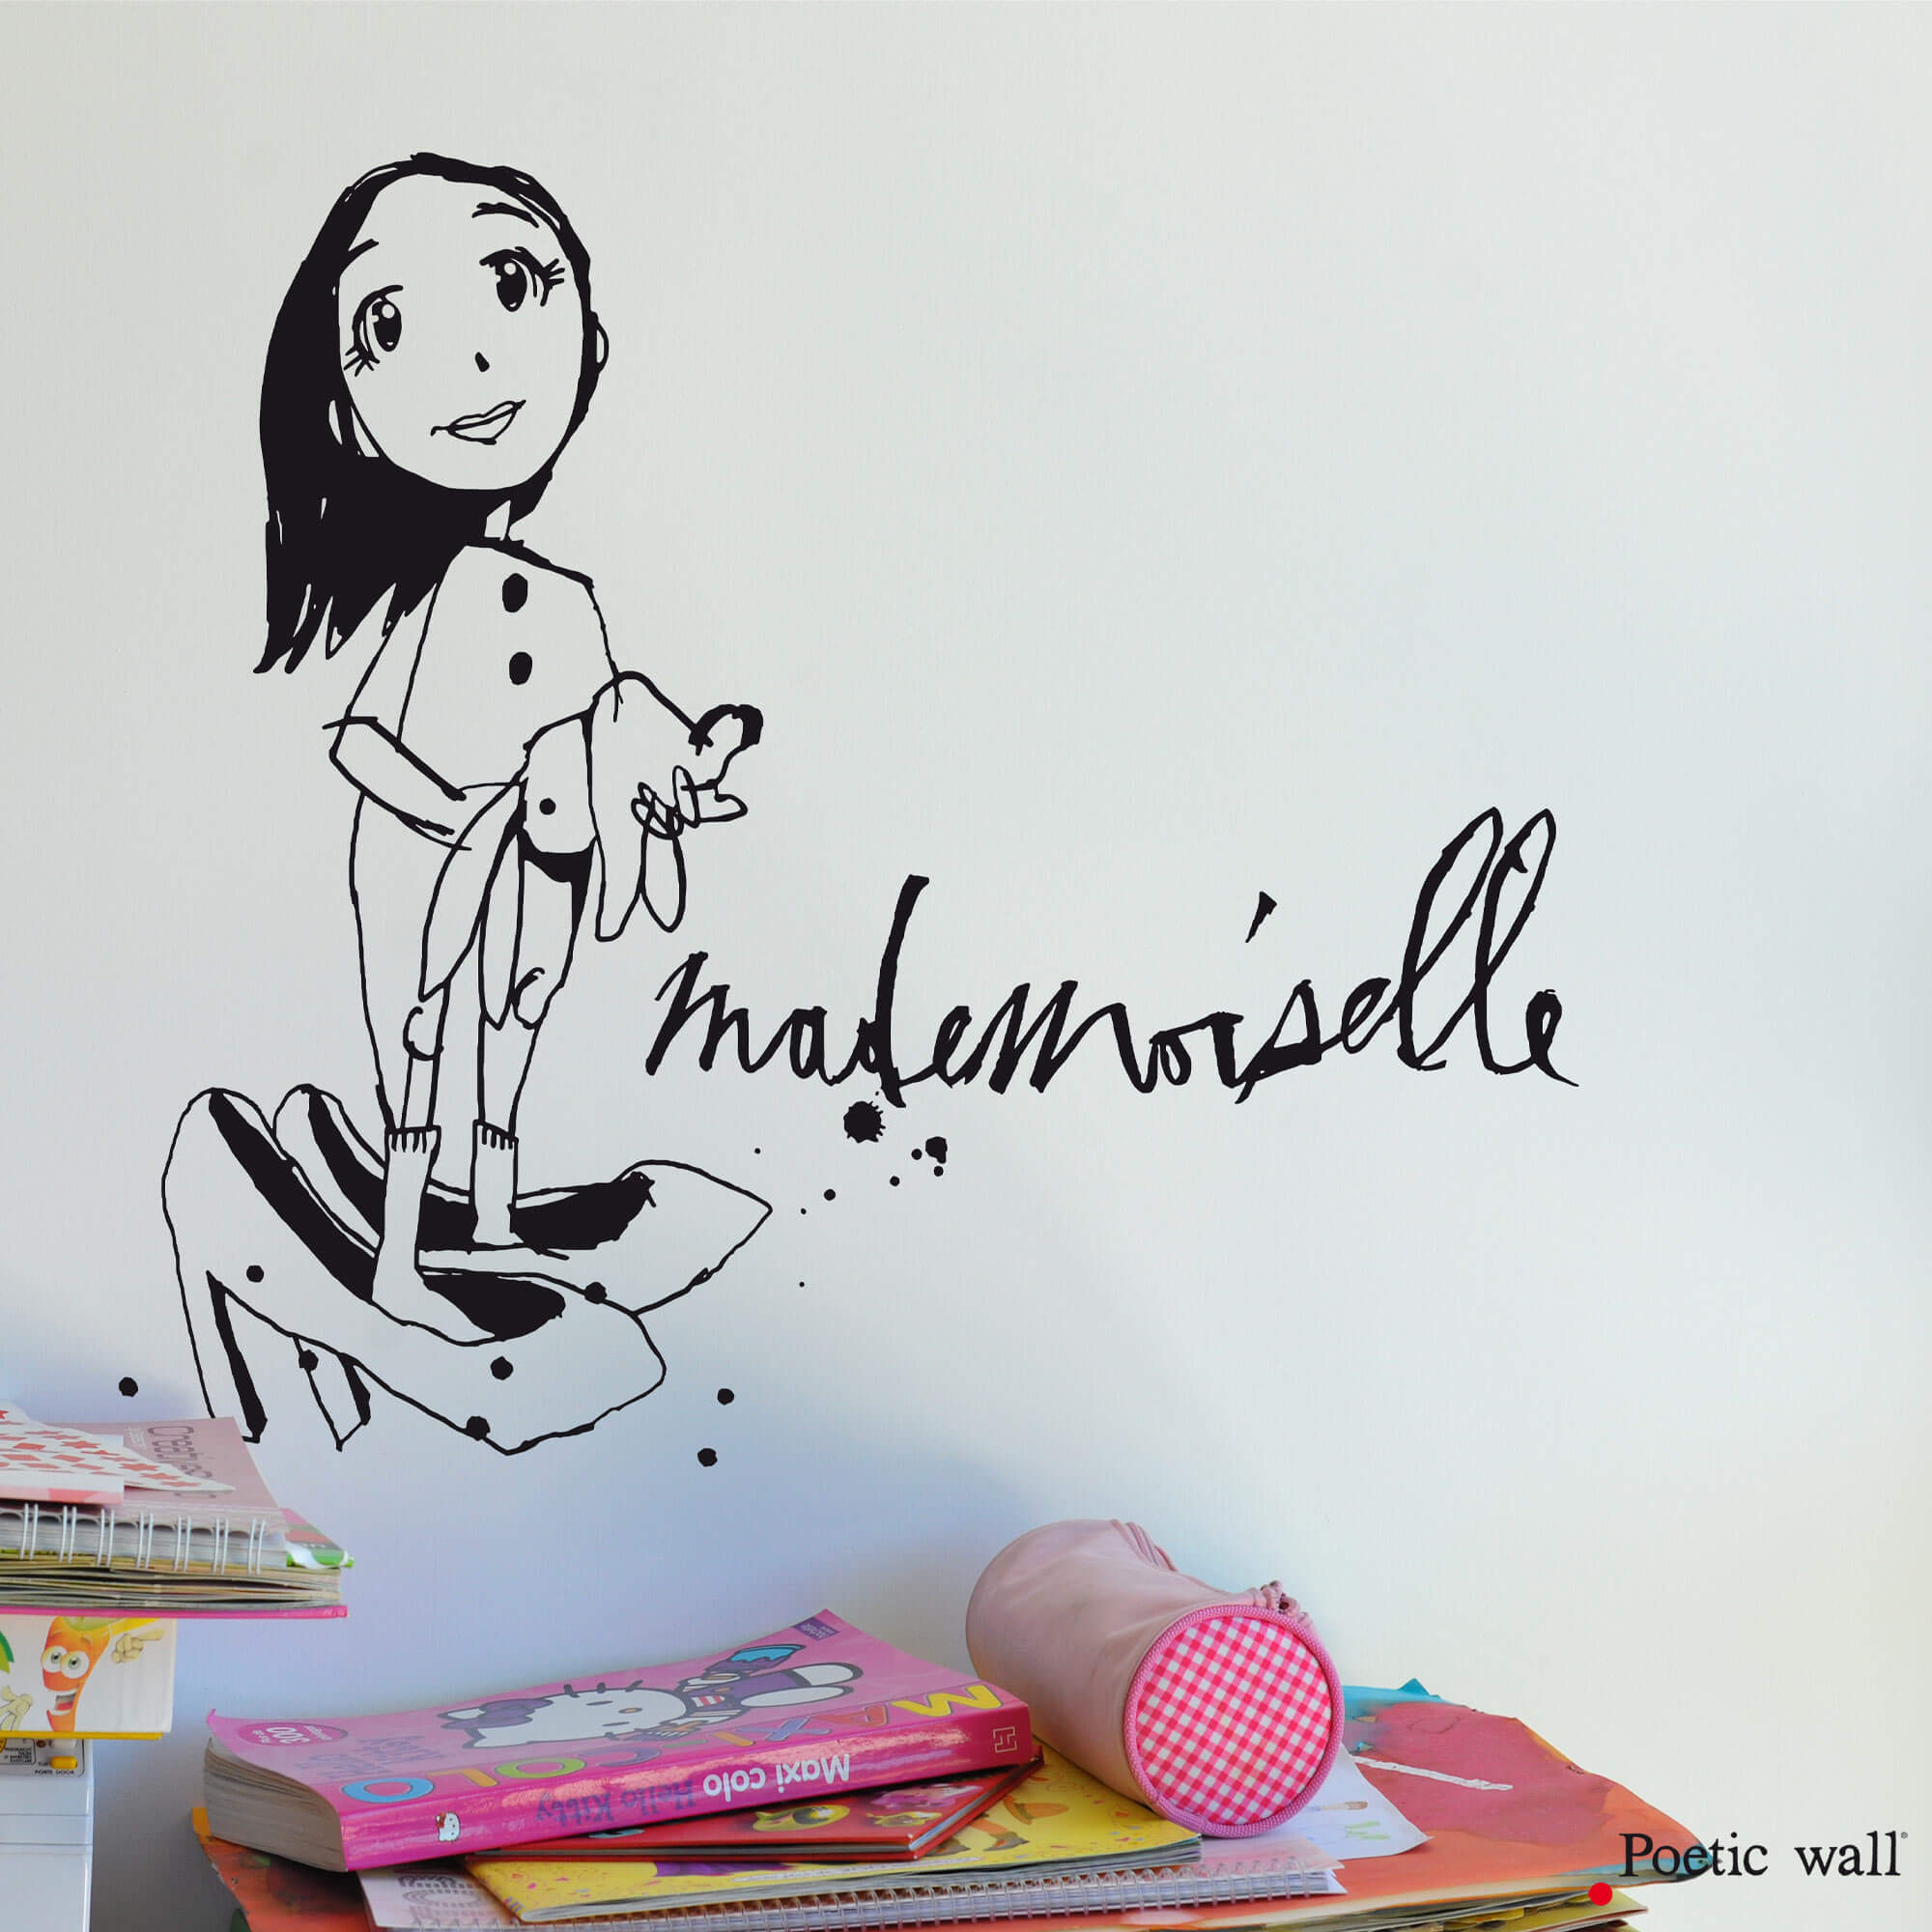 stickers petite fille dessin original mademoiselle by Poetic Wall